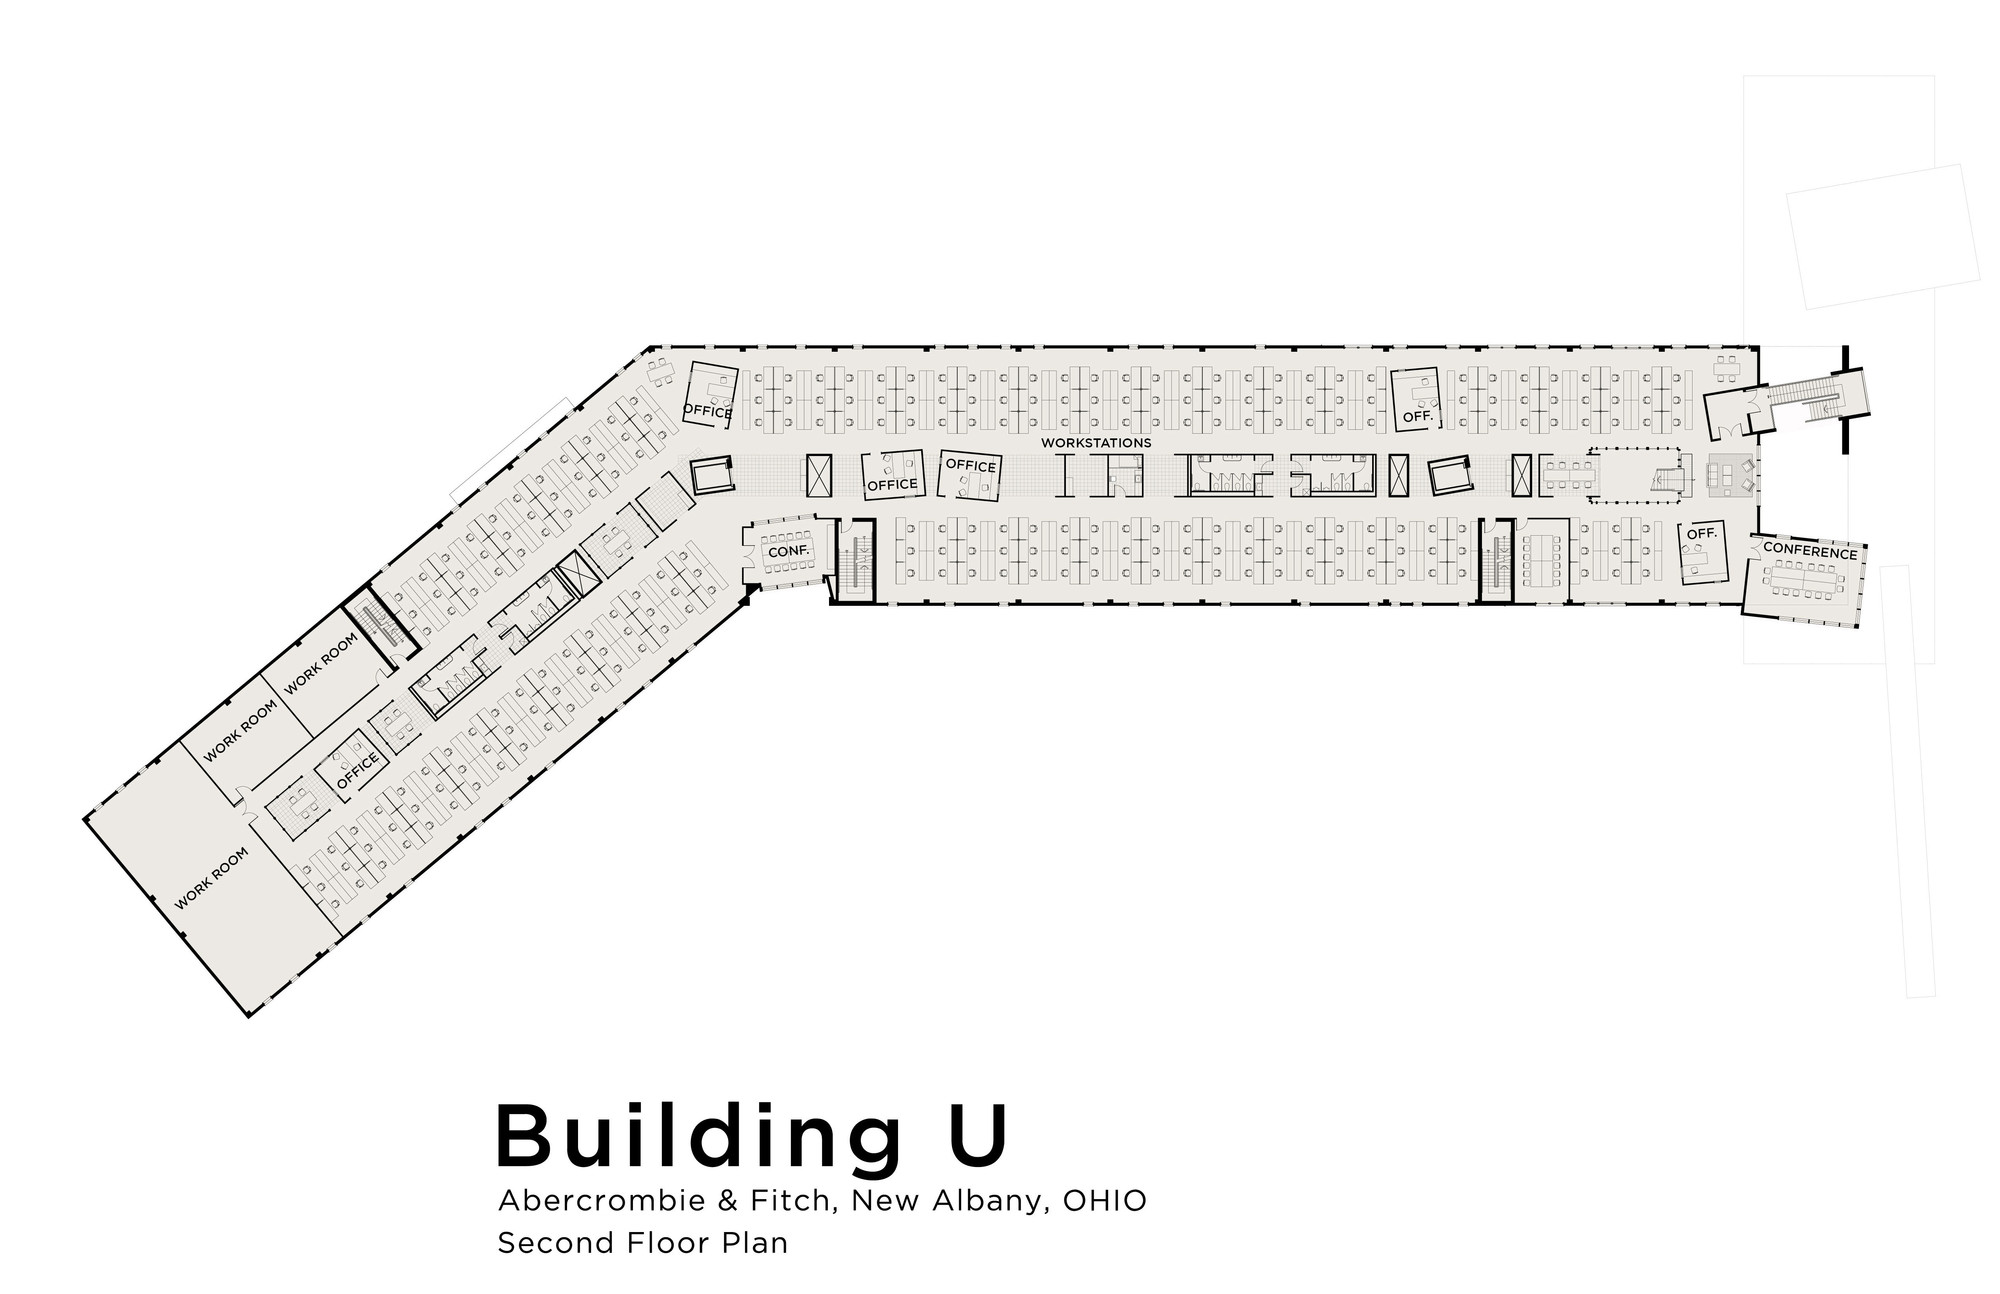 Gallery of Abercrombie & Fitch Building U / MJ Sagan Architecture - 11